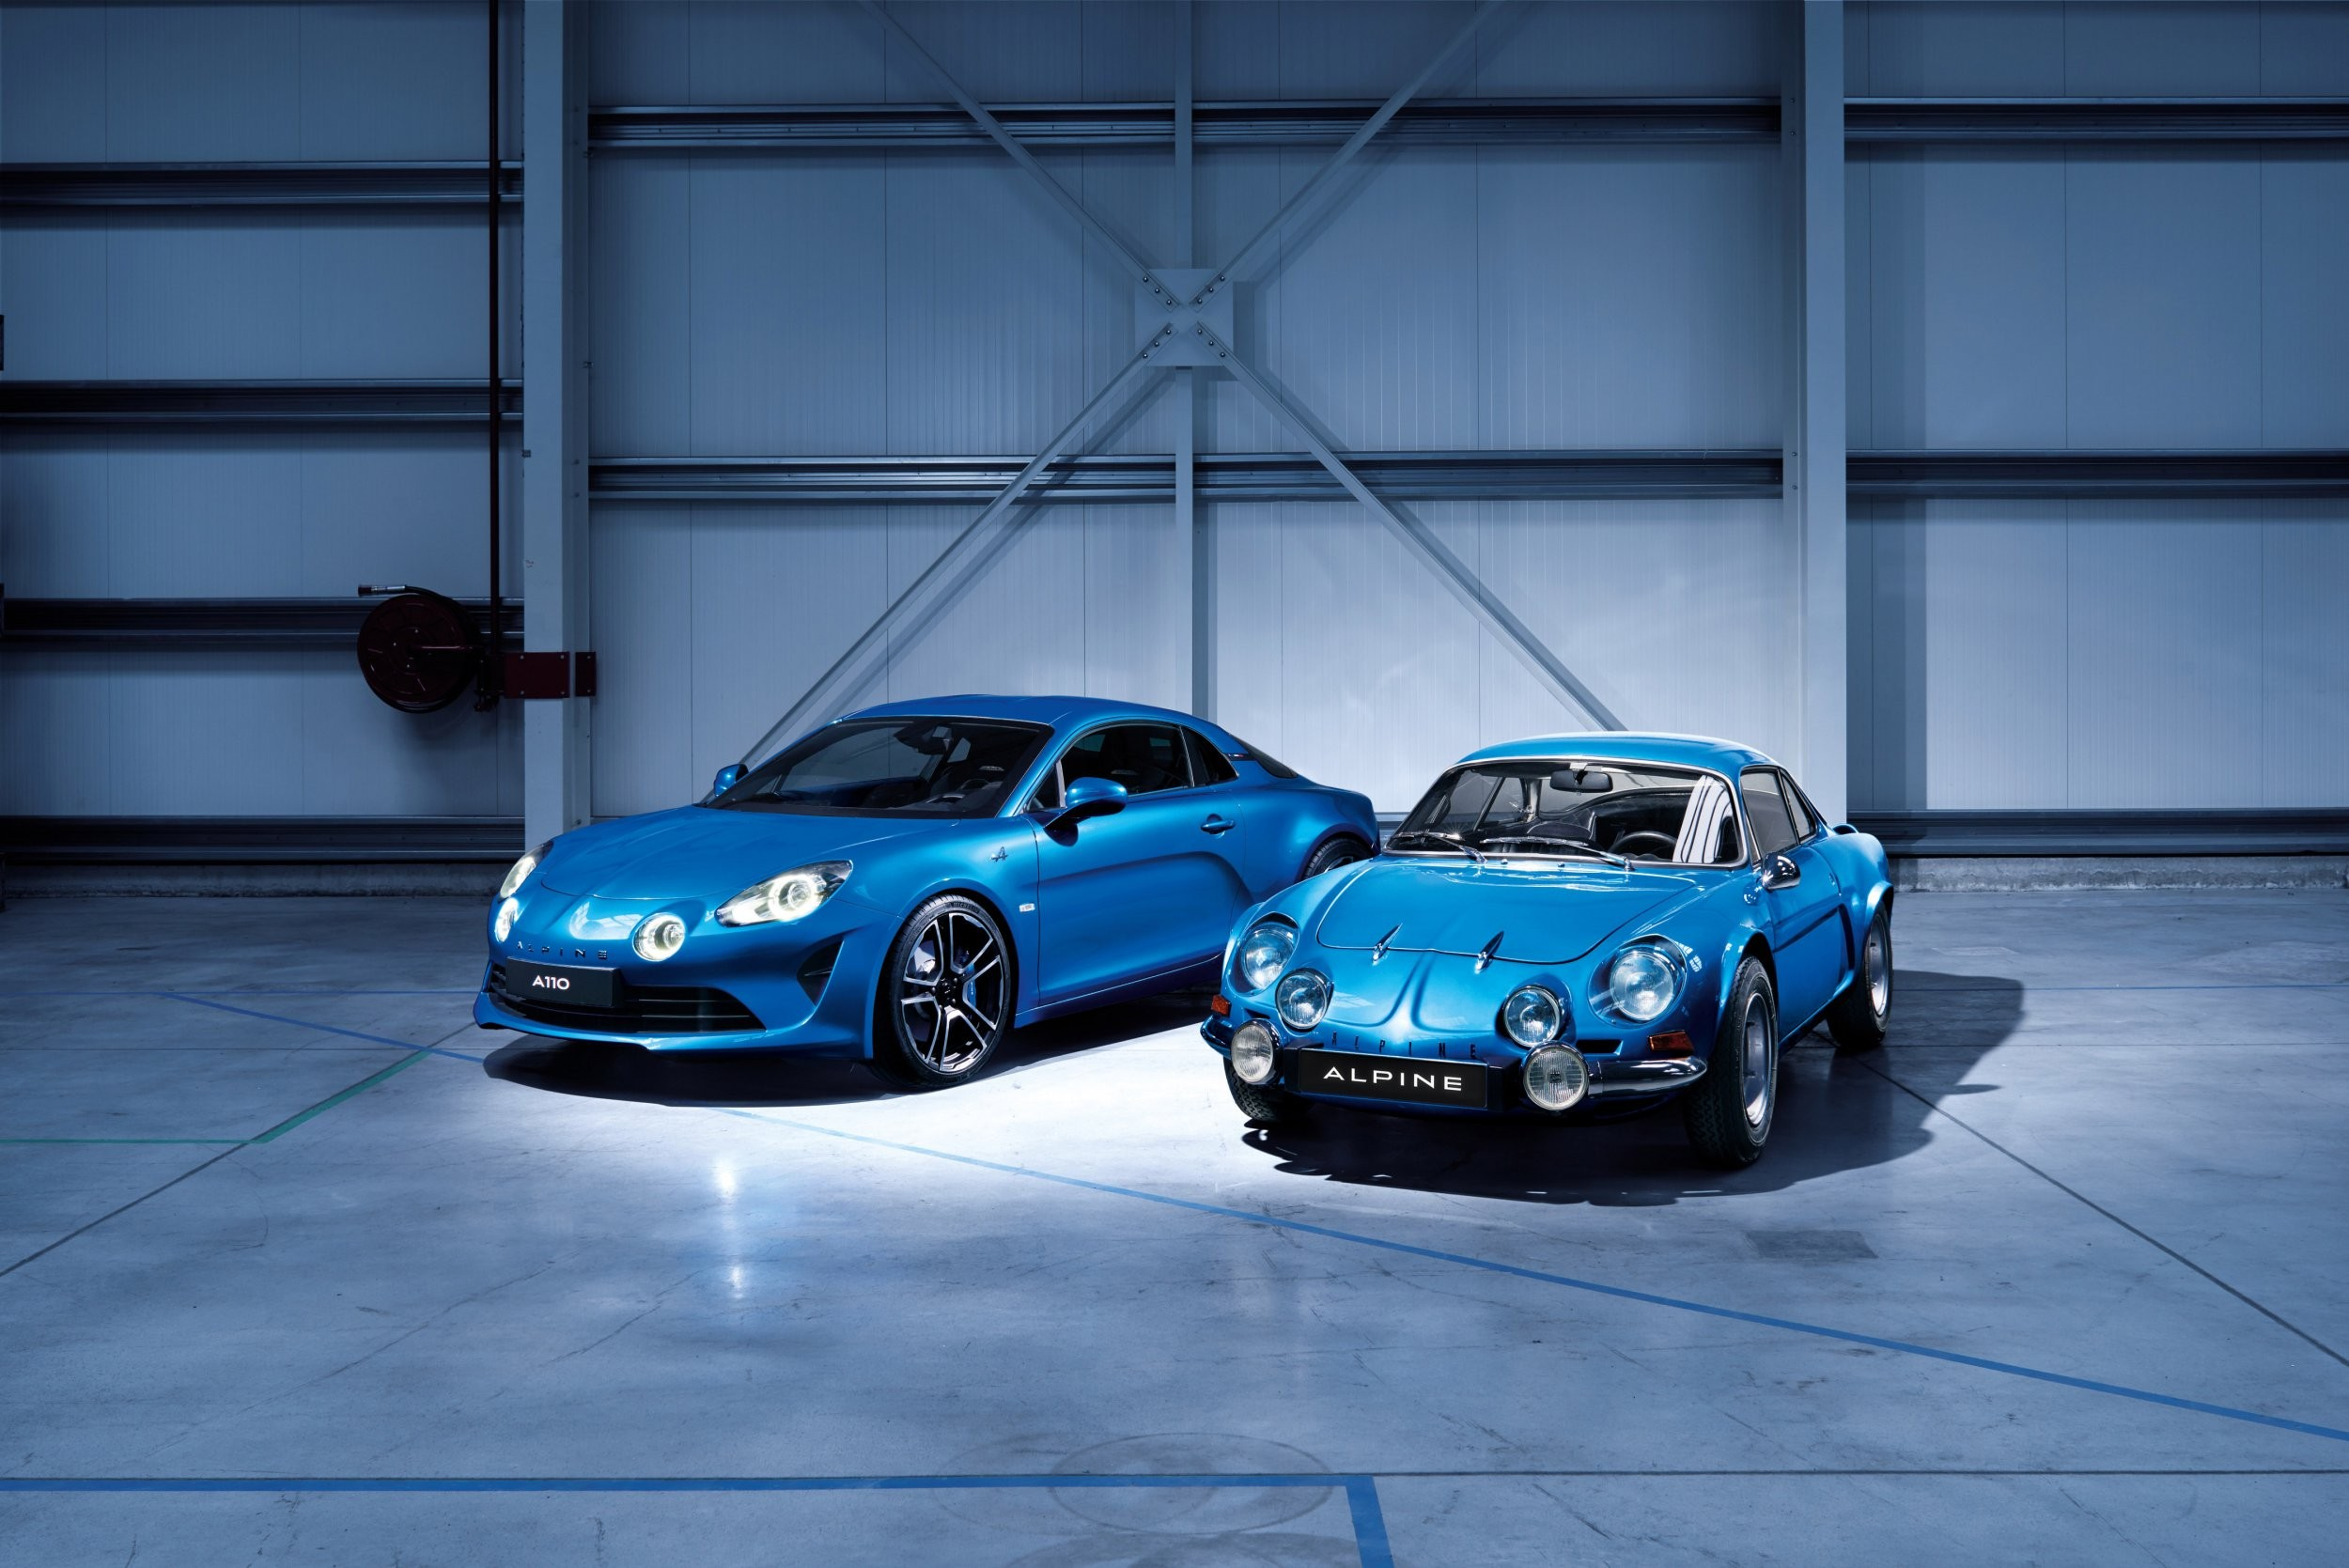 ALPINE A110 AND RENAULT ALPINE A110